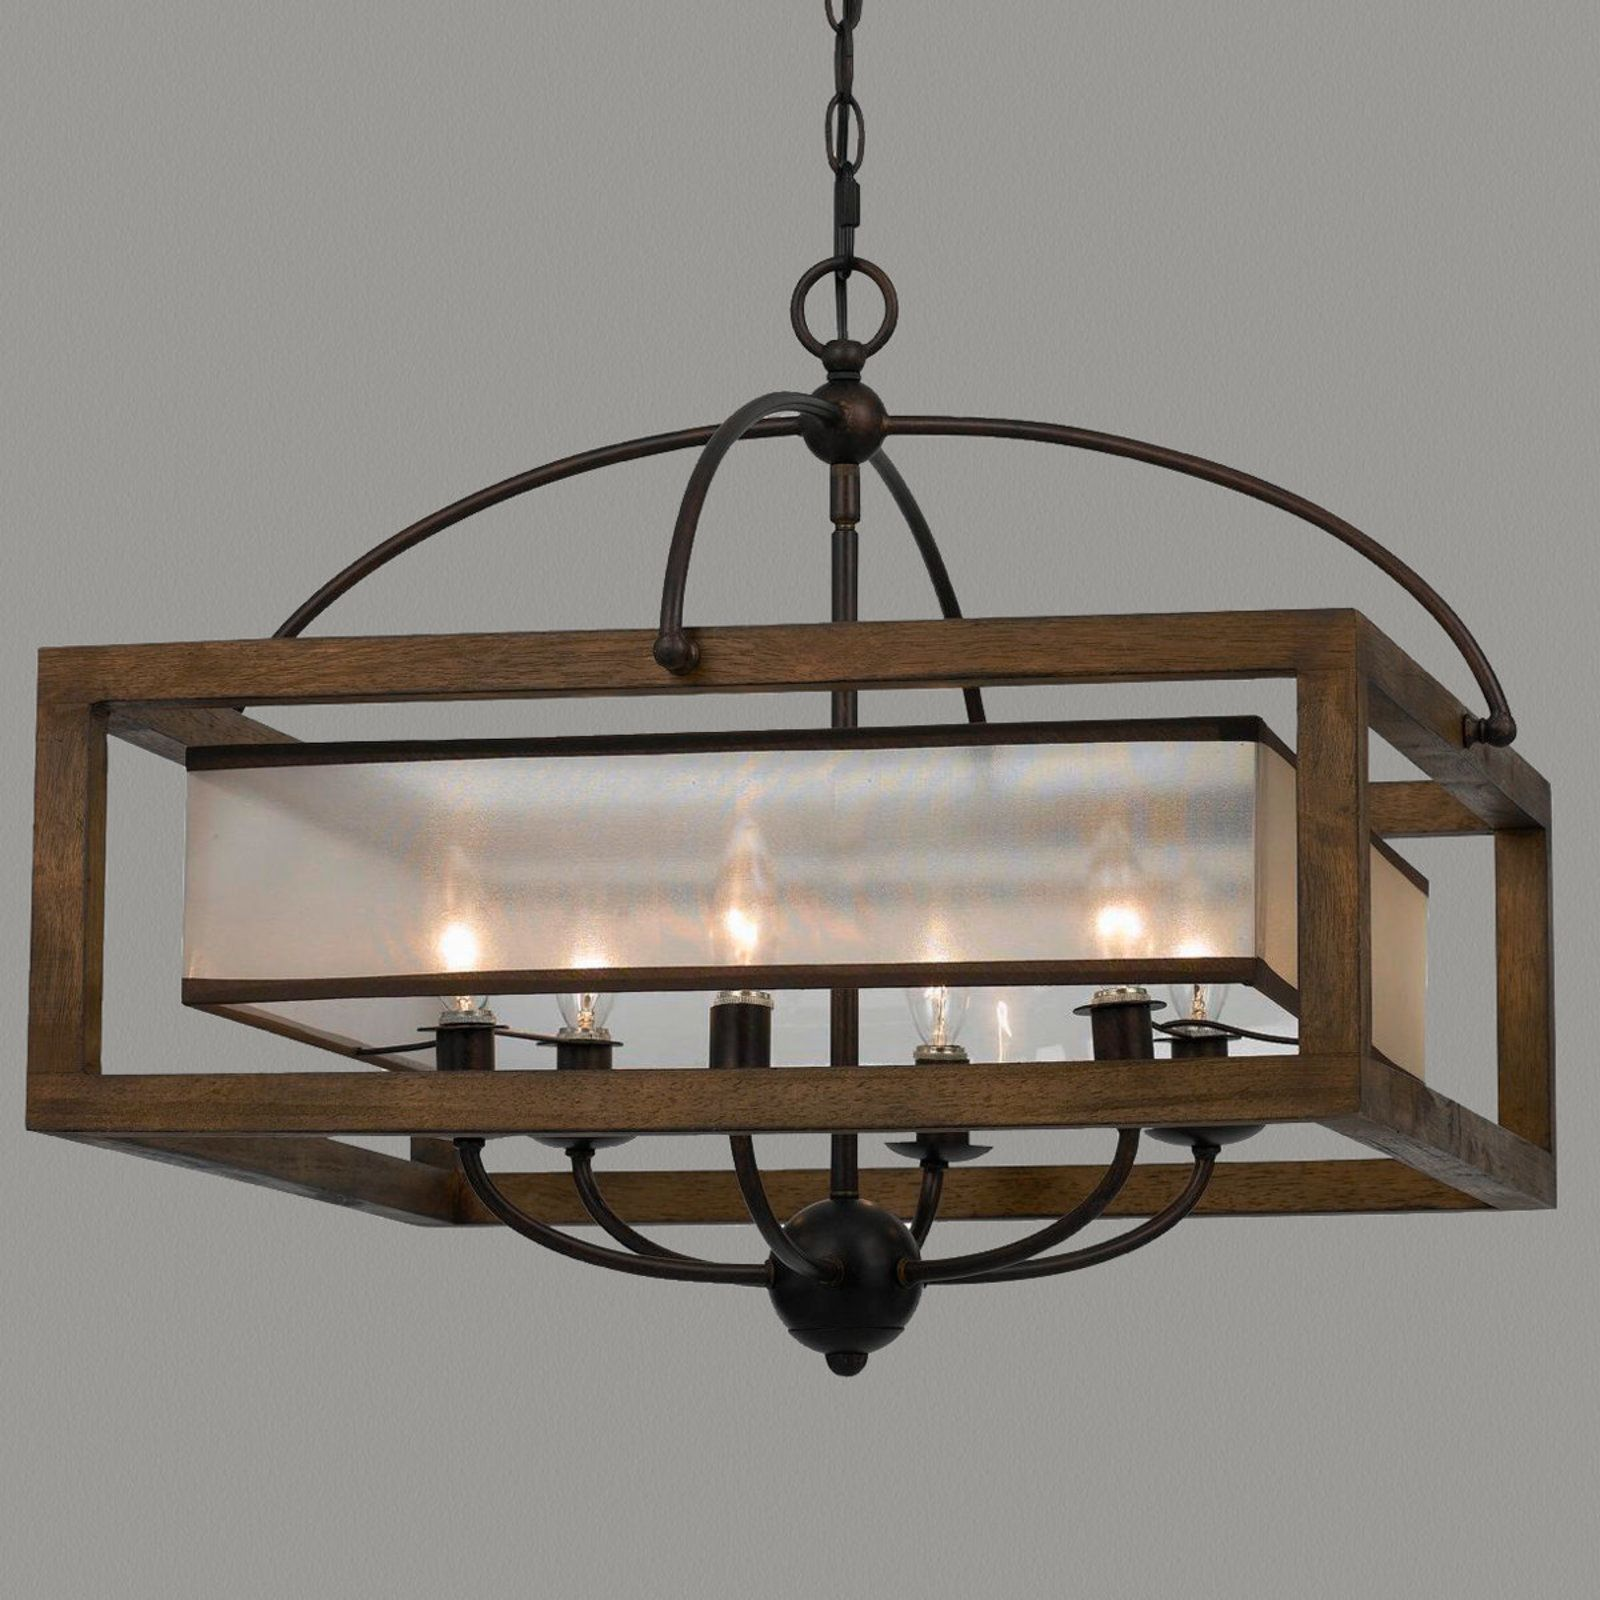 Square Wood Frame And Sheer Shade Chandelier Lighting In